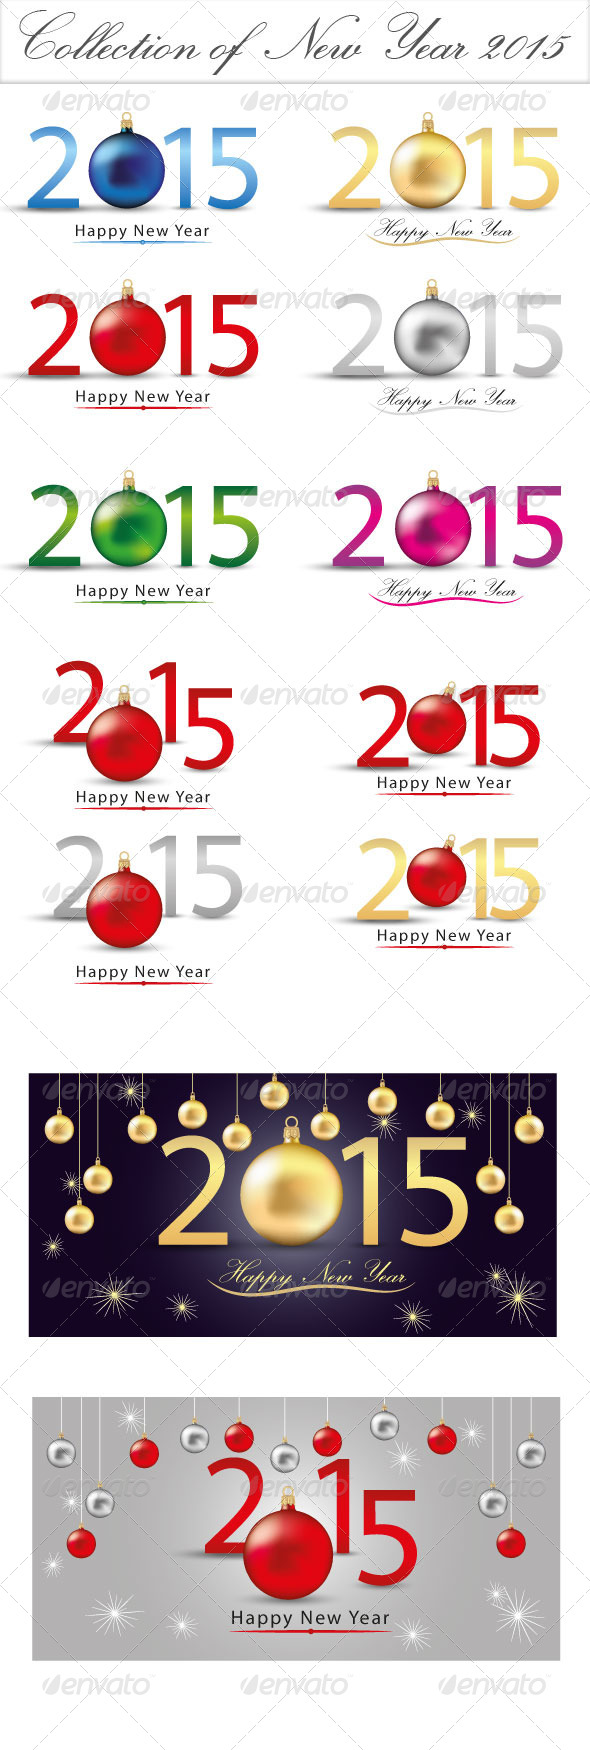 GraphicRiver Collection of New Year 2015 8771454